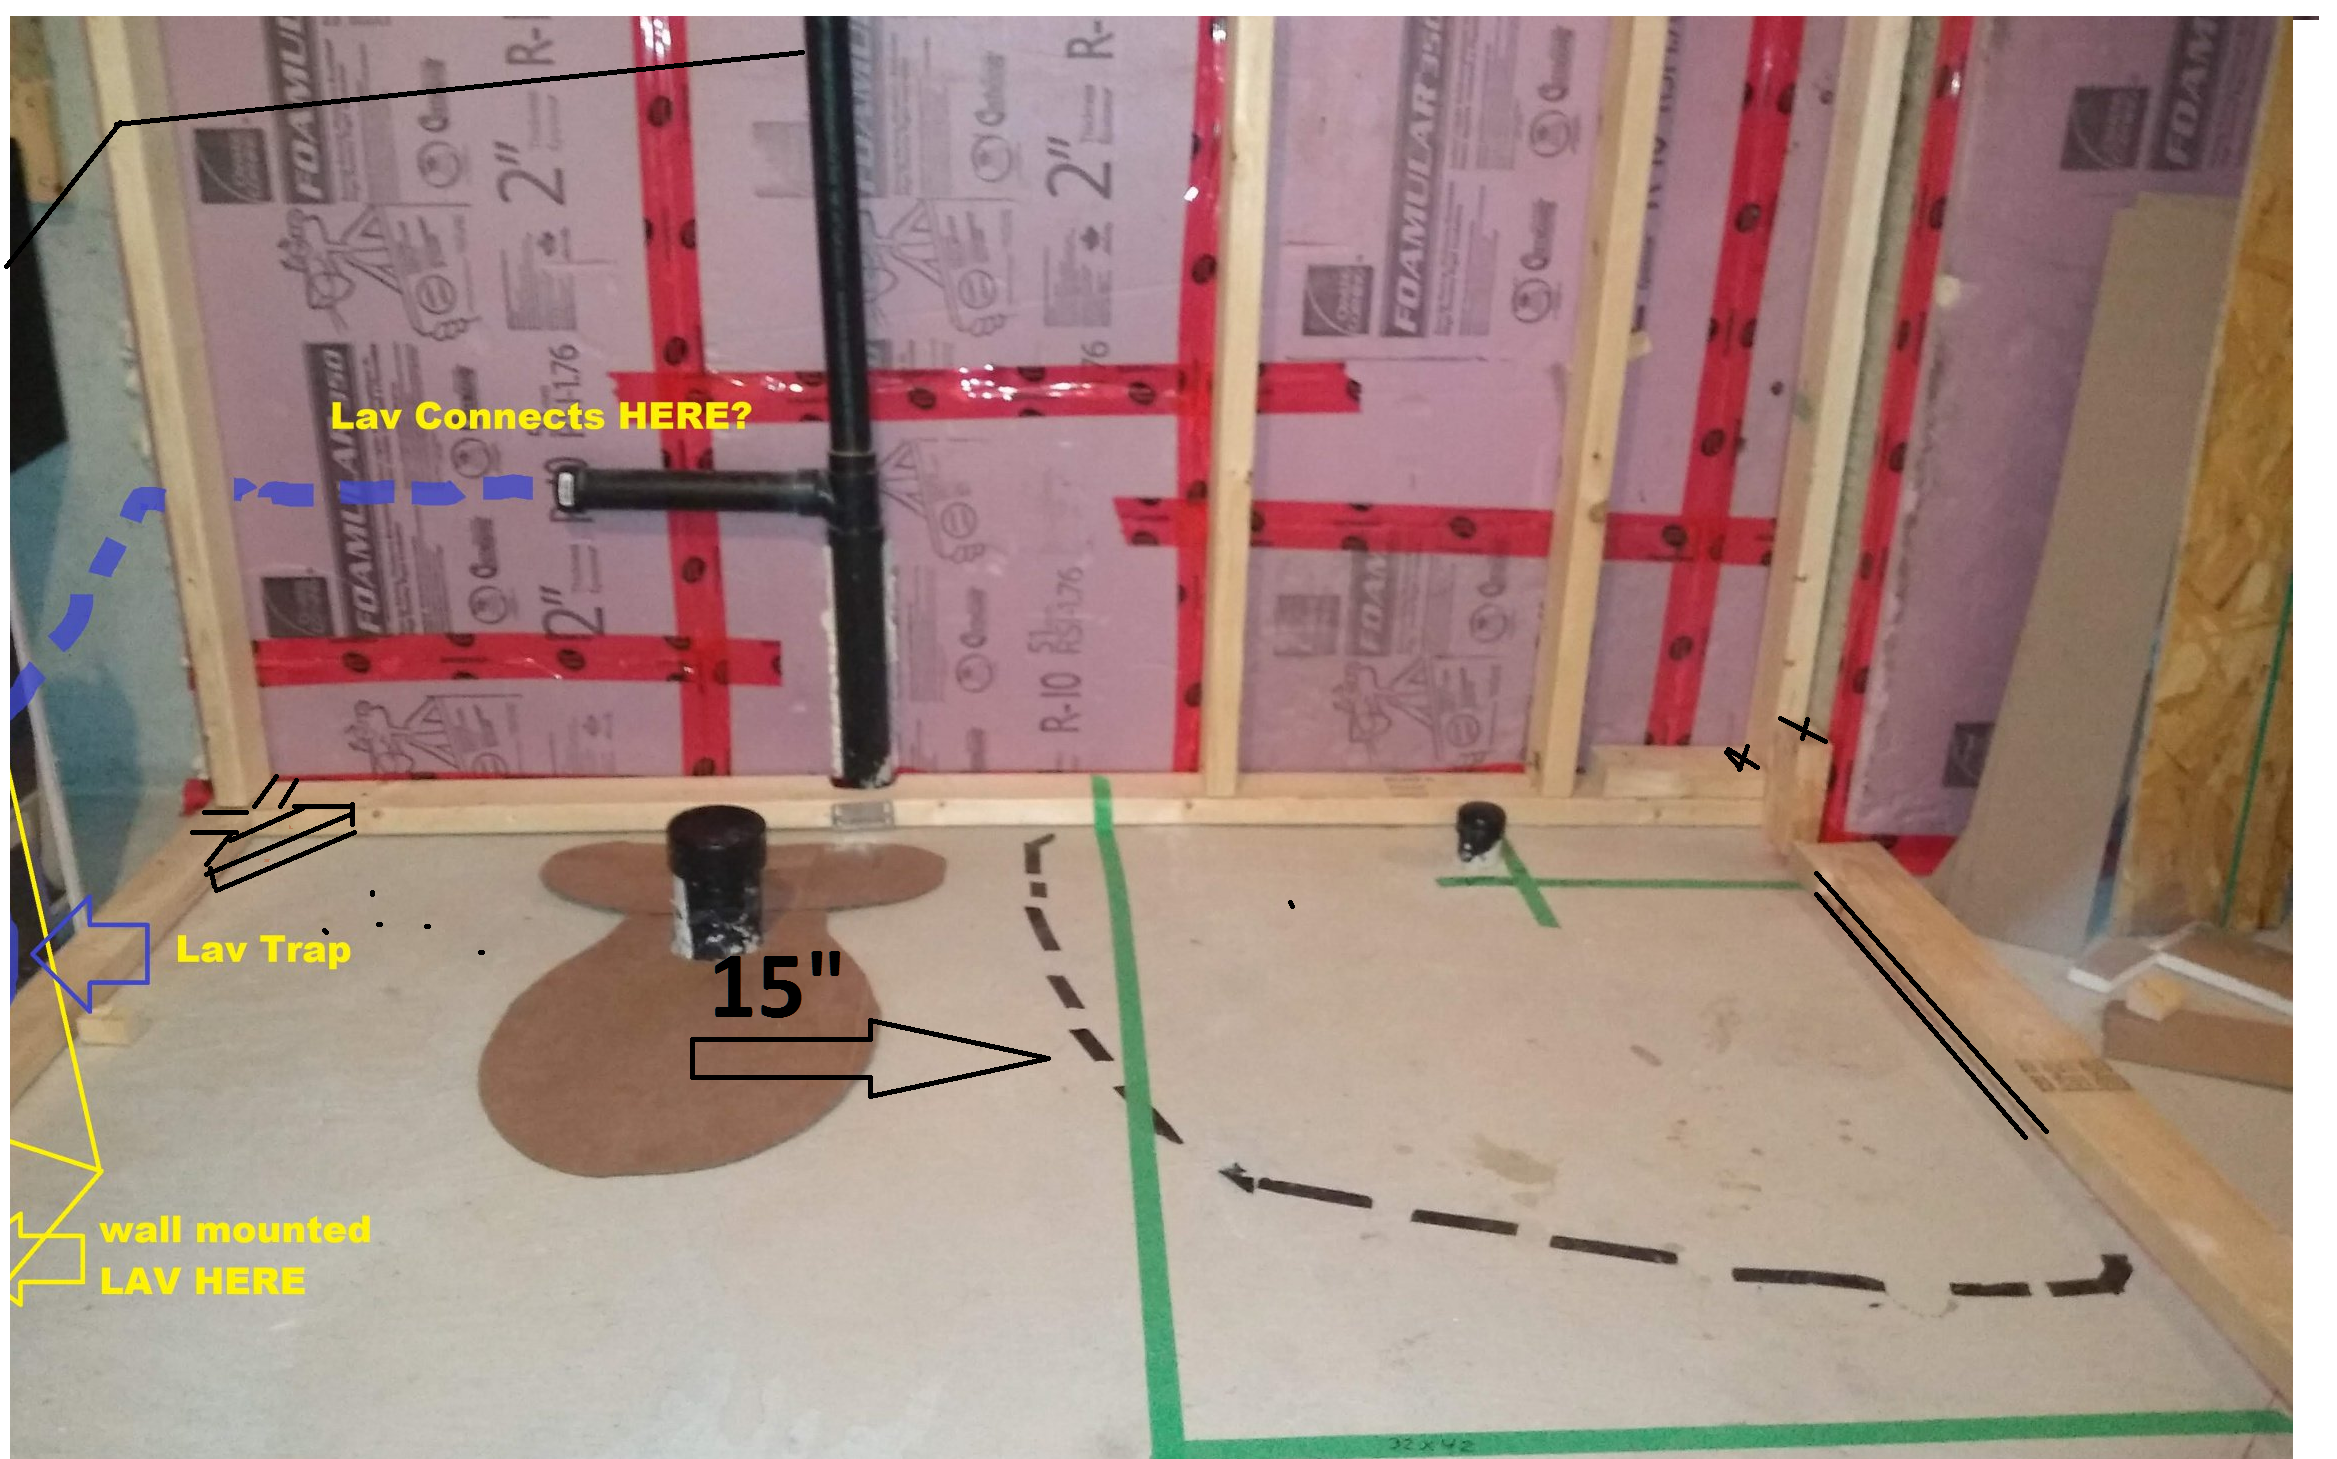 Basement Bathroom Rough In Planning, How To Install Bathroom In Basement Without Rough In